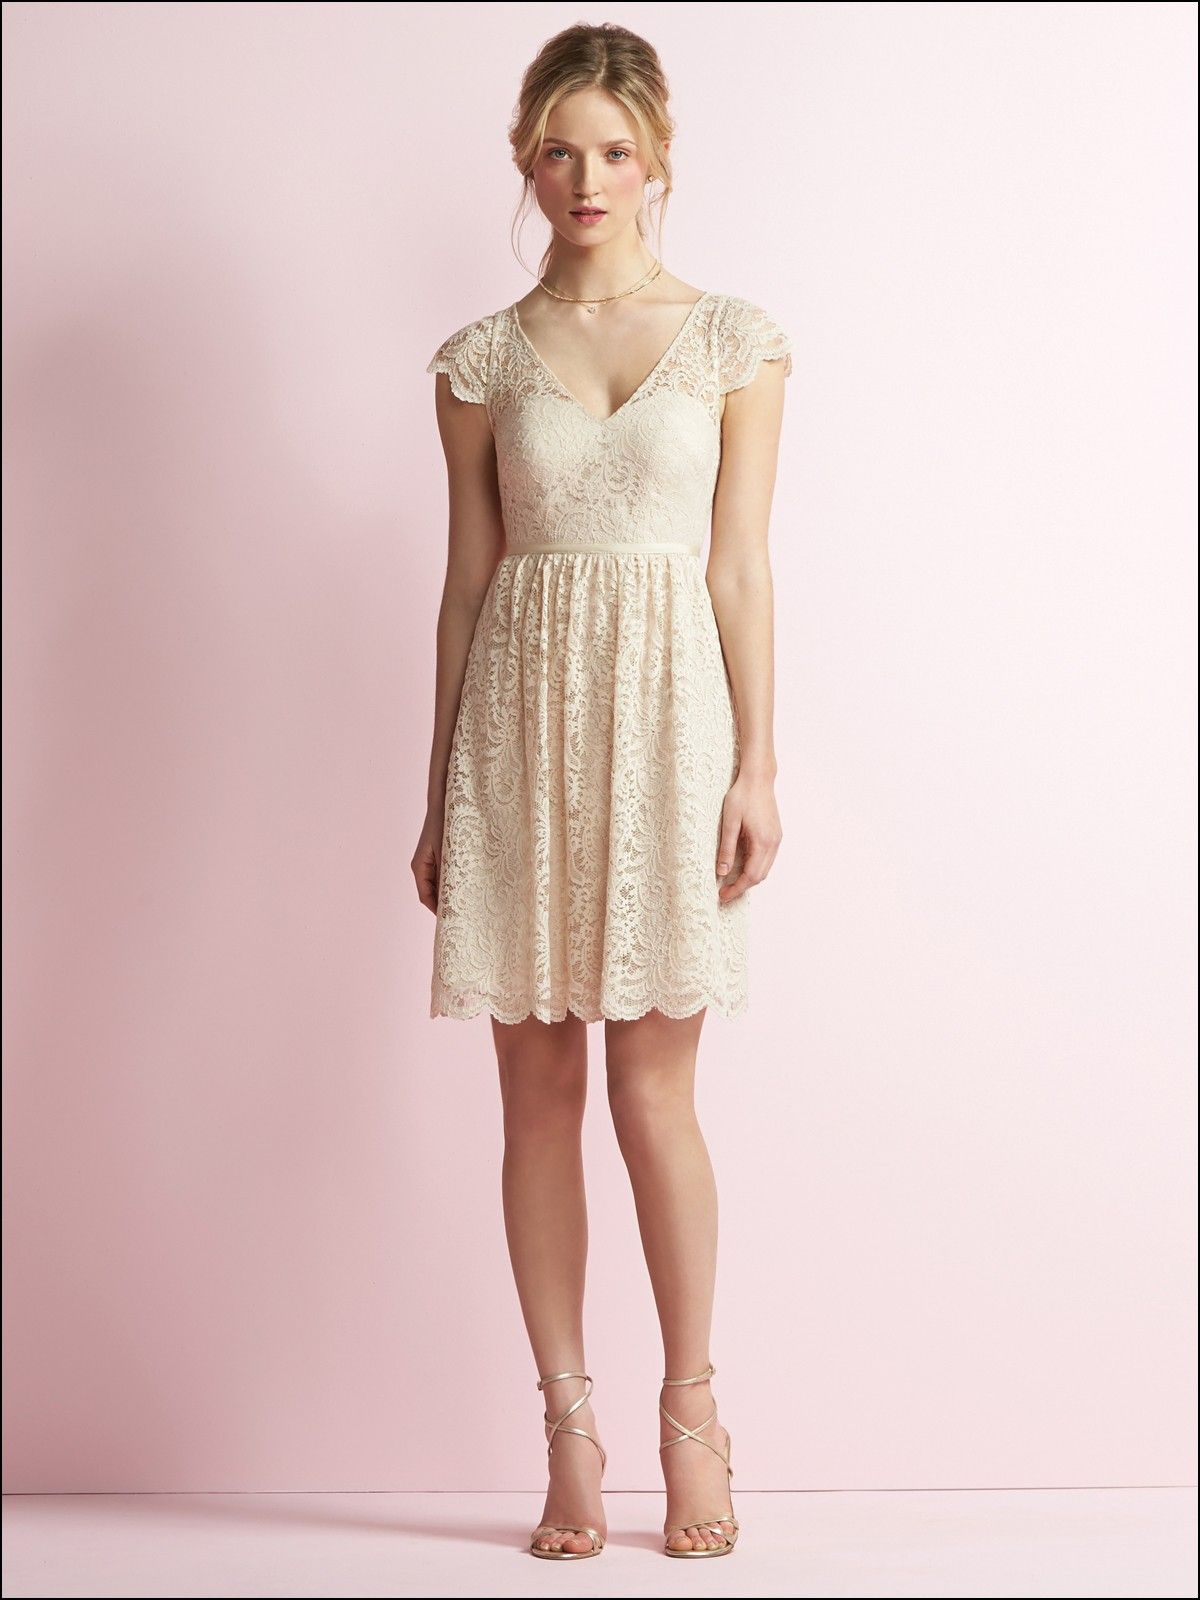 Bridesmaid Dresses for Teenager | Dresses and Gowns Ideas ...